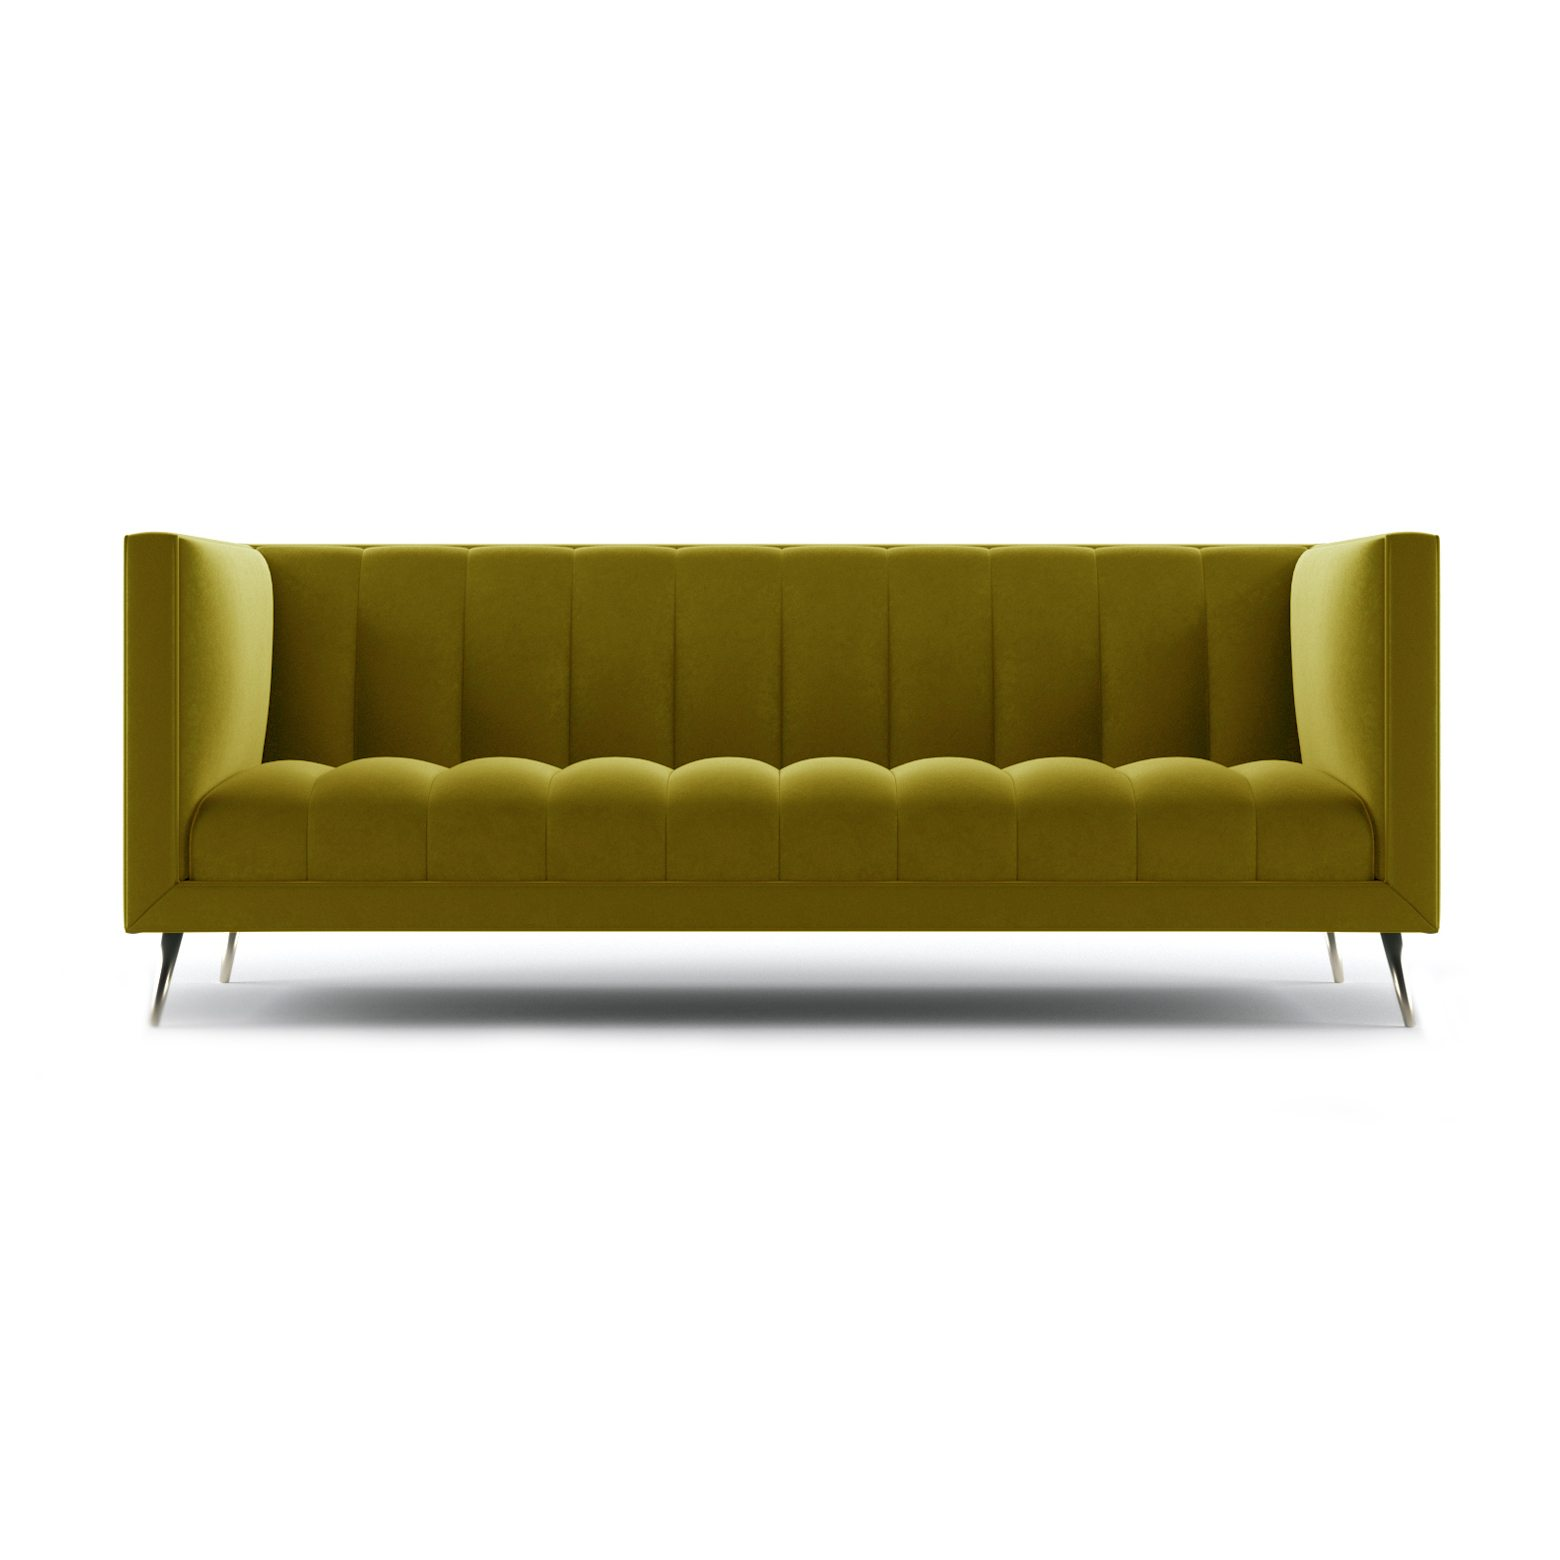 one and half seater sofa urban ladder luxury three sofas connick a